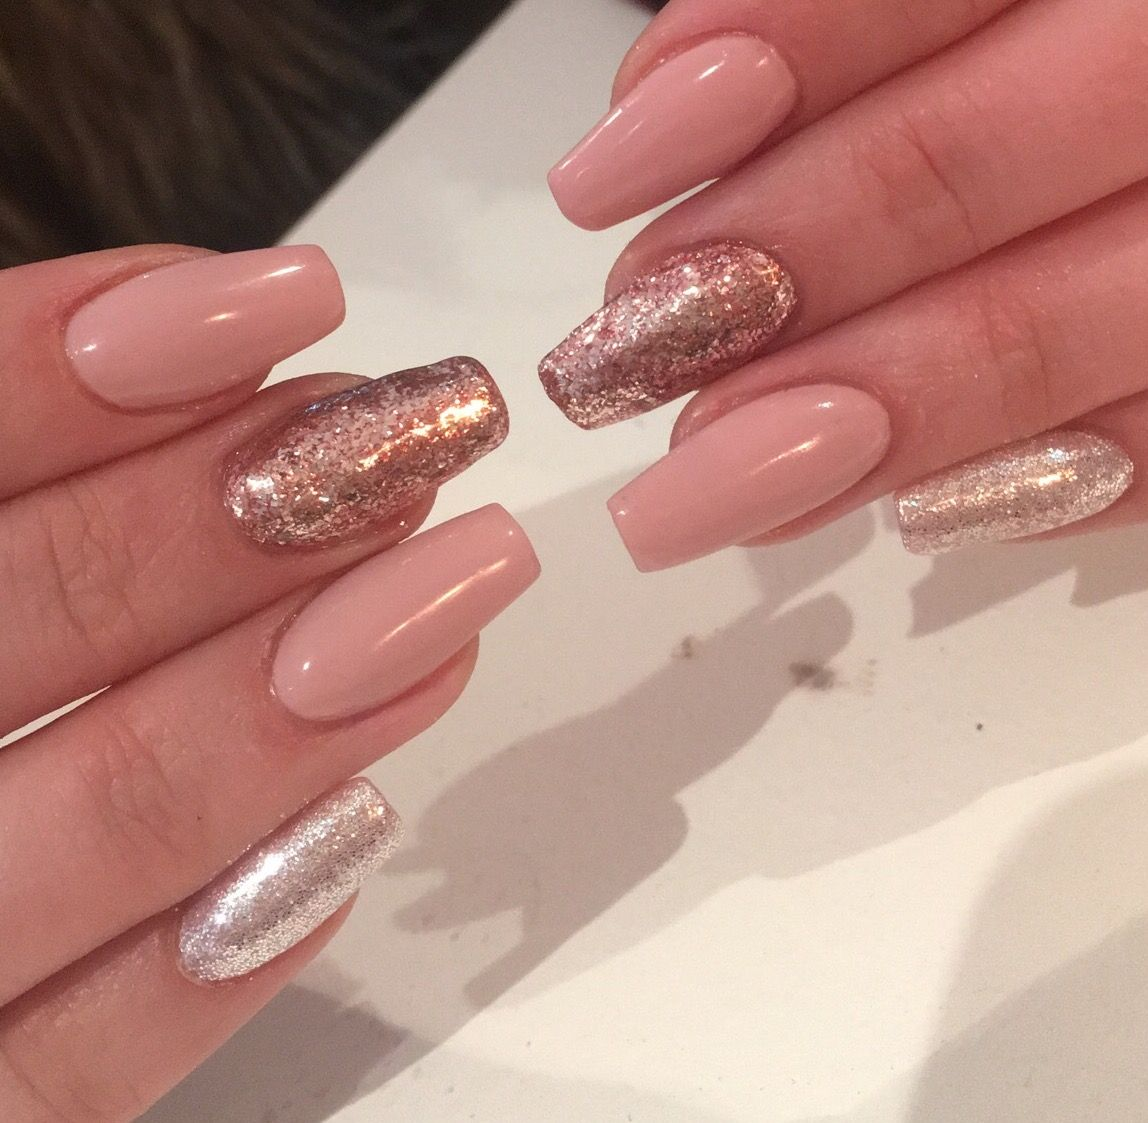 coffin shaped acrylic nails with nude pink, gold and silver